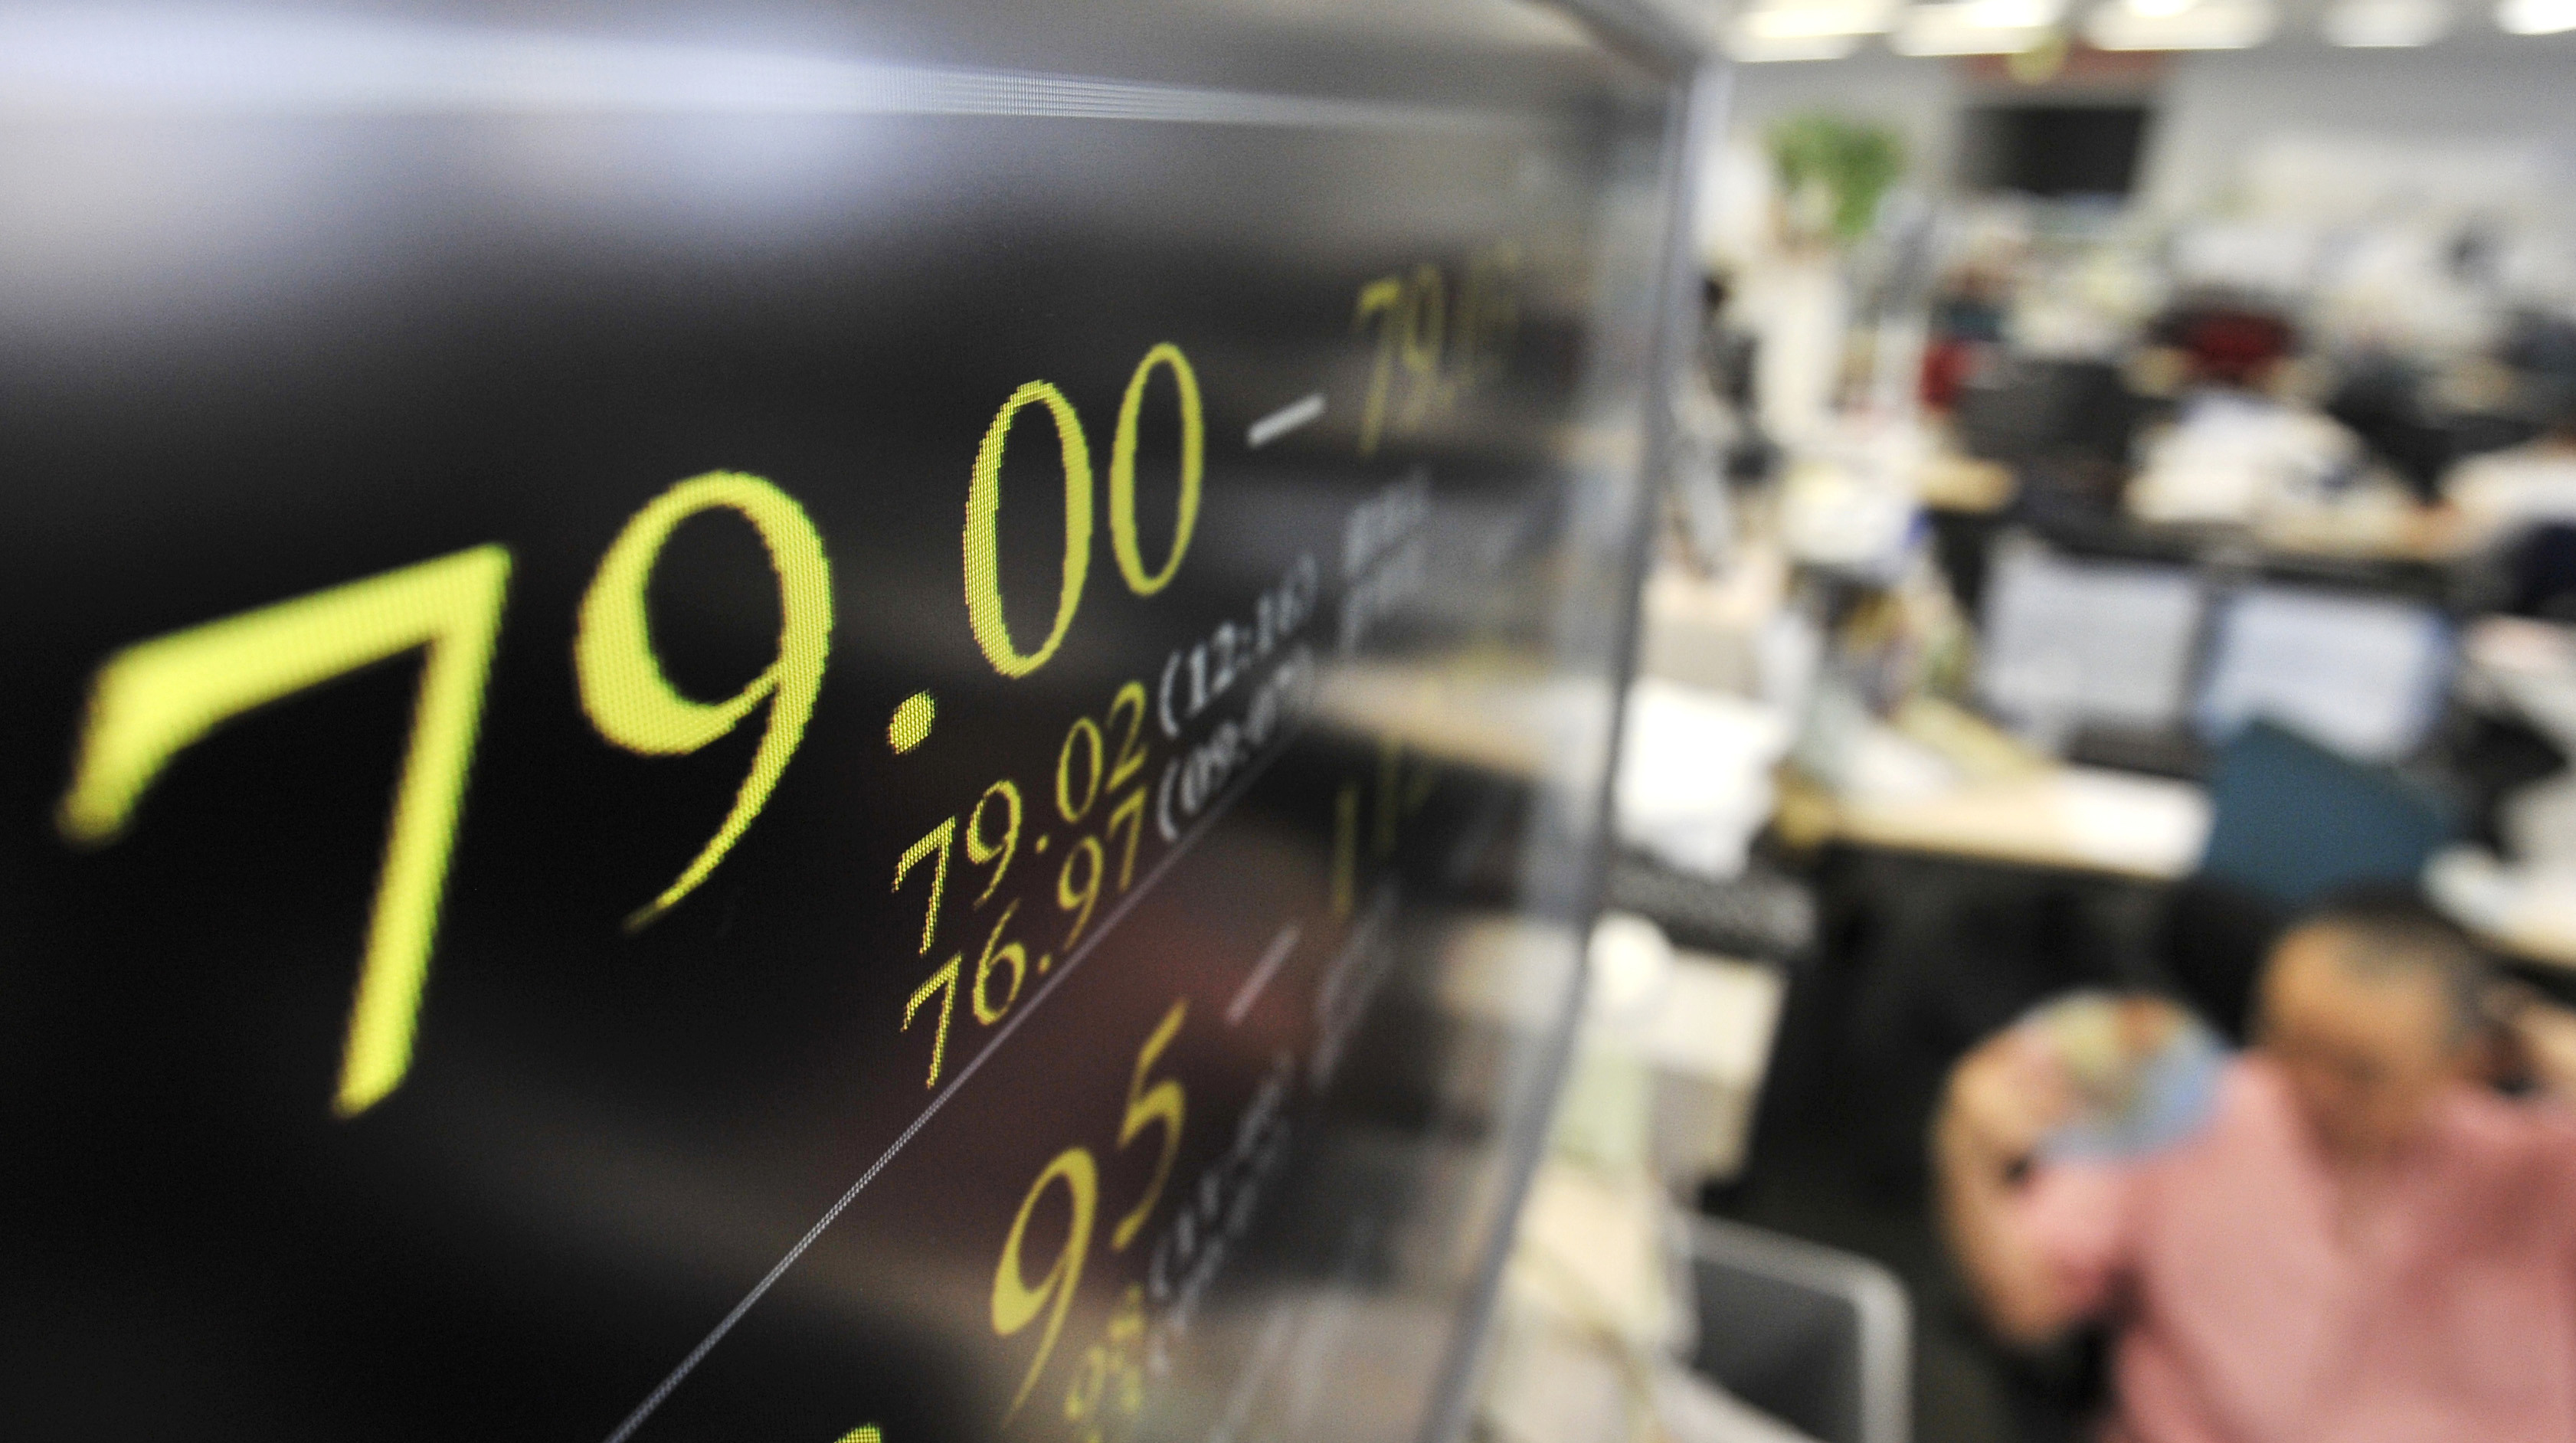 Uptick: An electronic board in Higashi-Shinbashi in Minato Ward, Tokyo, shows the dollar trading in the 79 yen level Thursday after Japanese monetary authorities intervened in the market to stem the yen's appreciation. | KYODO